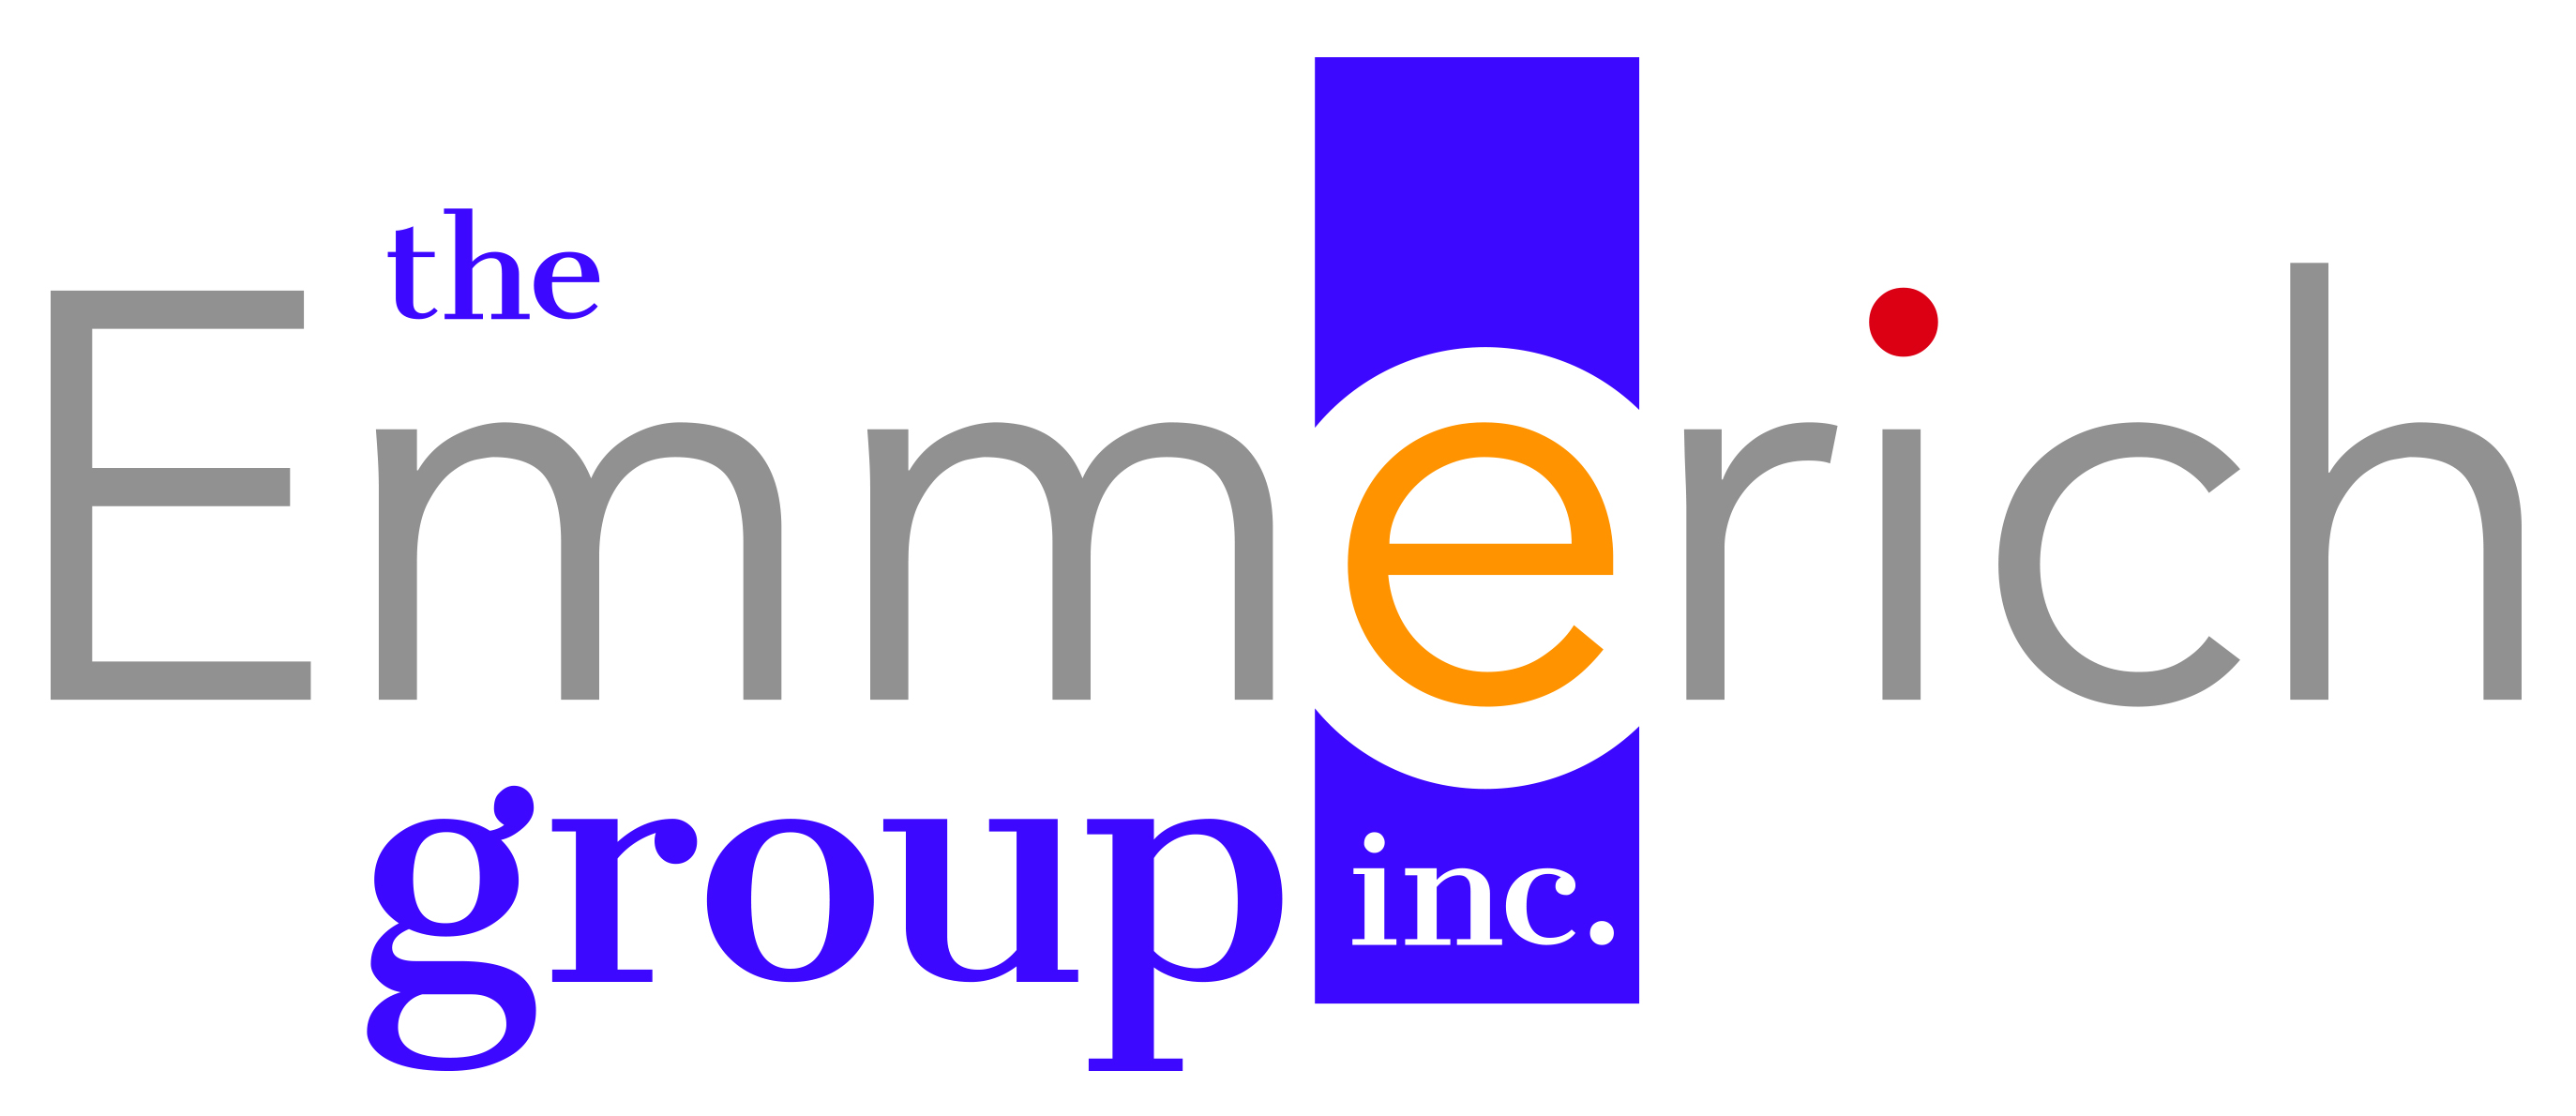 The Emmerich Group, Inc.<sup>&reg;</sup>